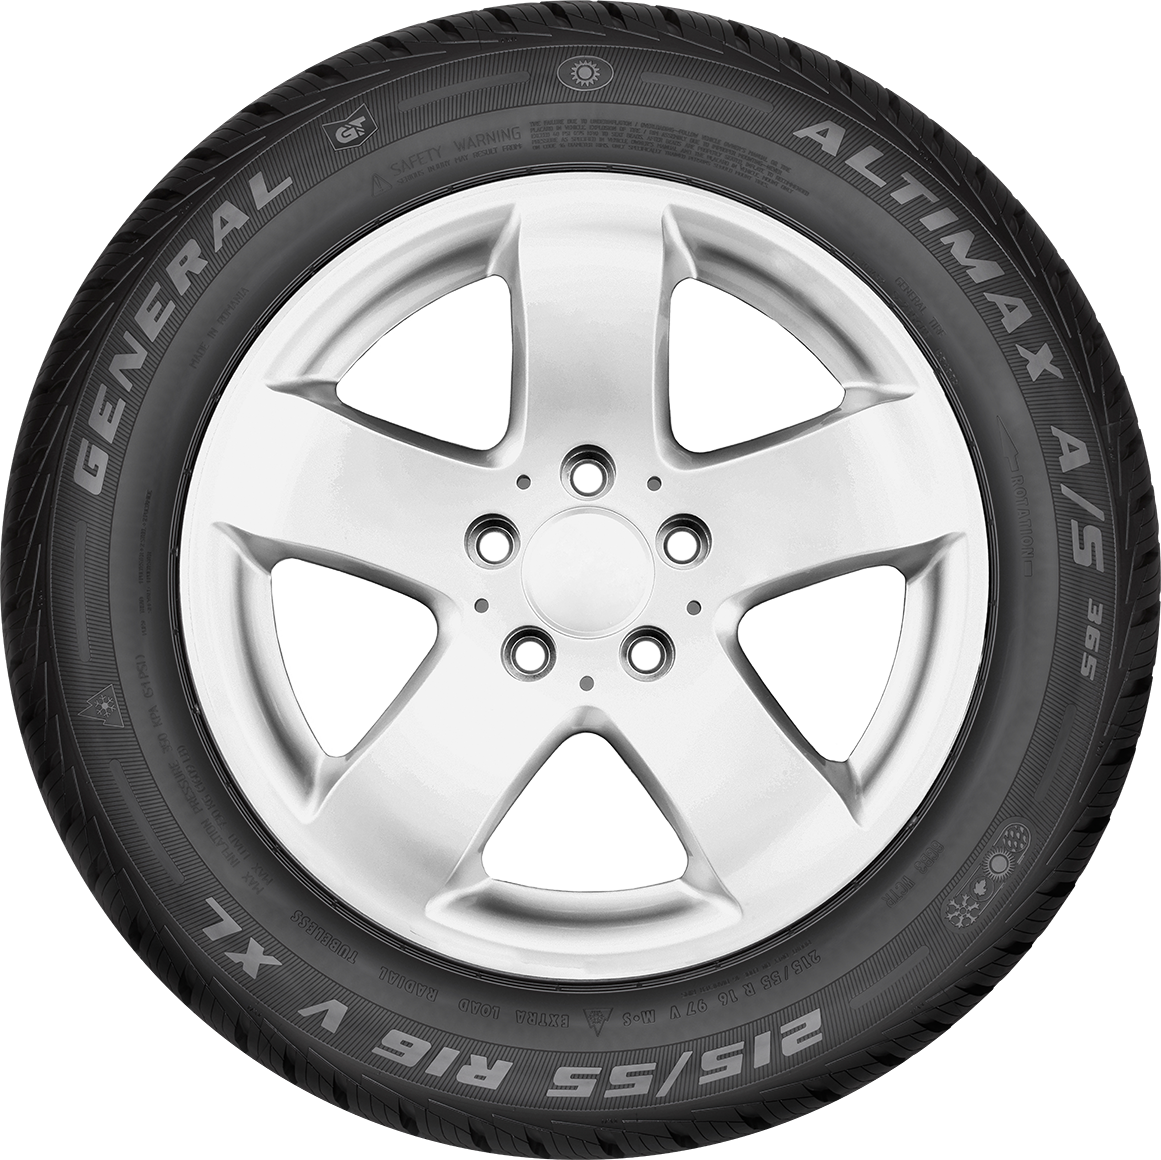 Racing clipart racing tire. Sports cars wheel download